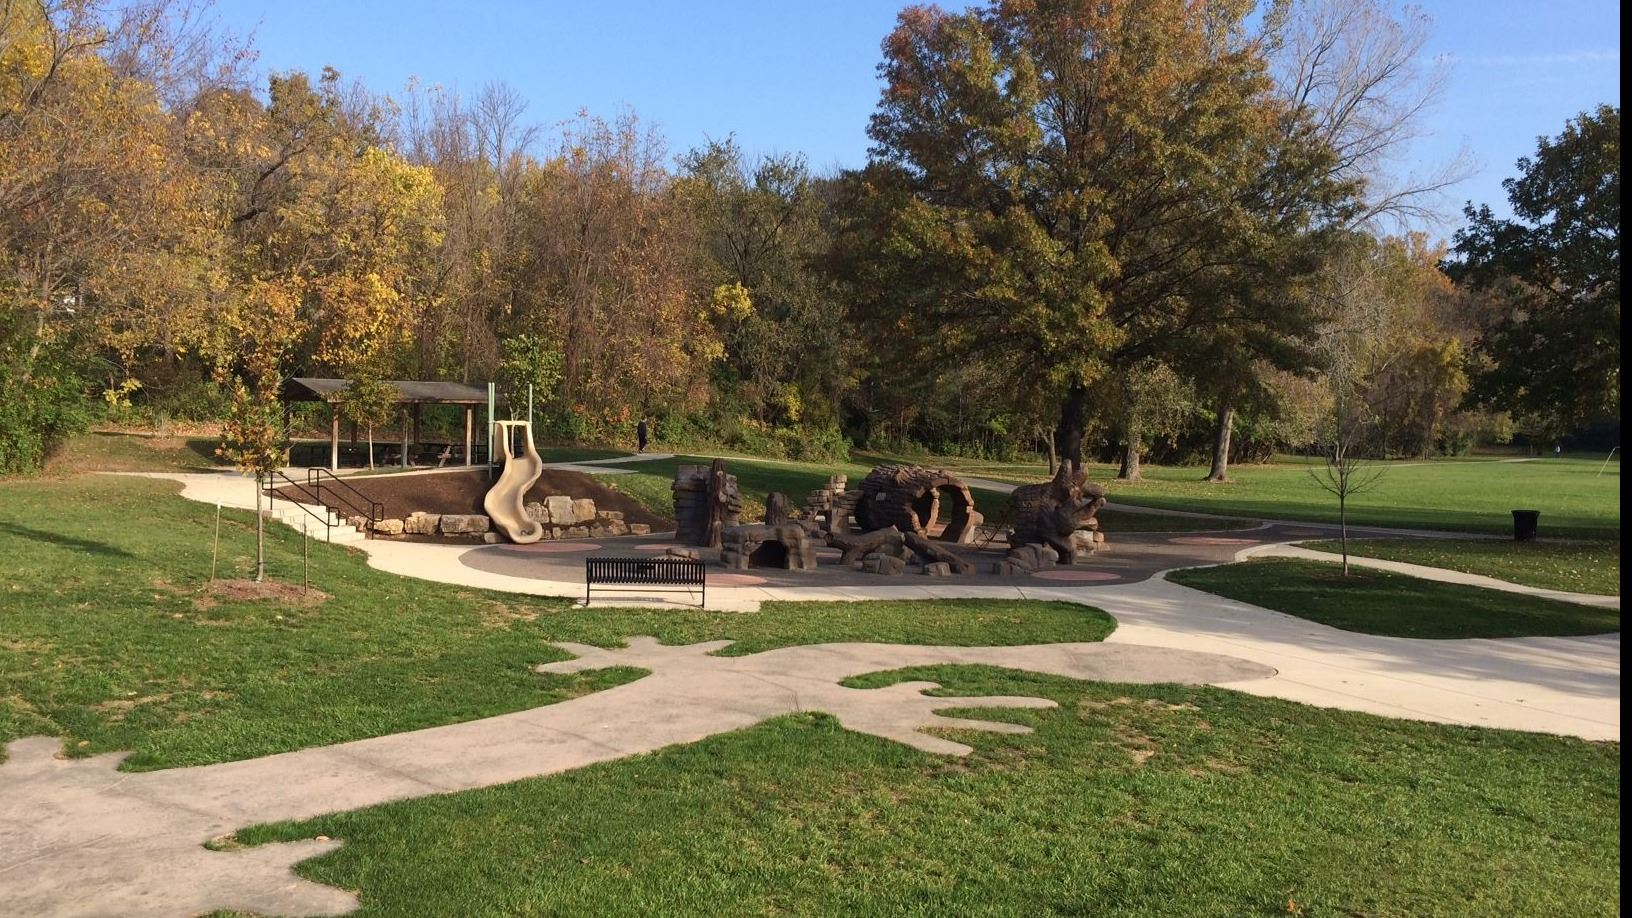 2014-10 Sugar Creek Playground 2